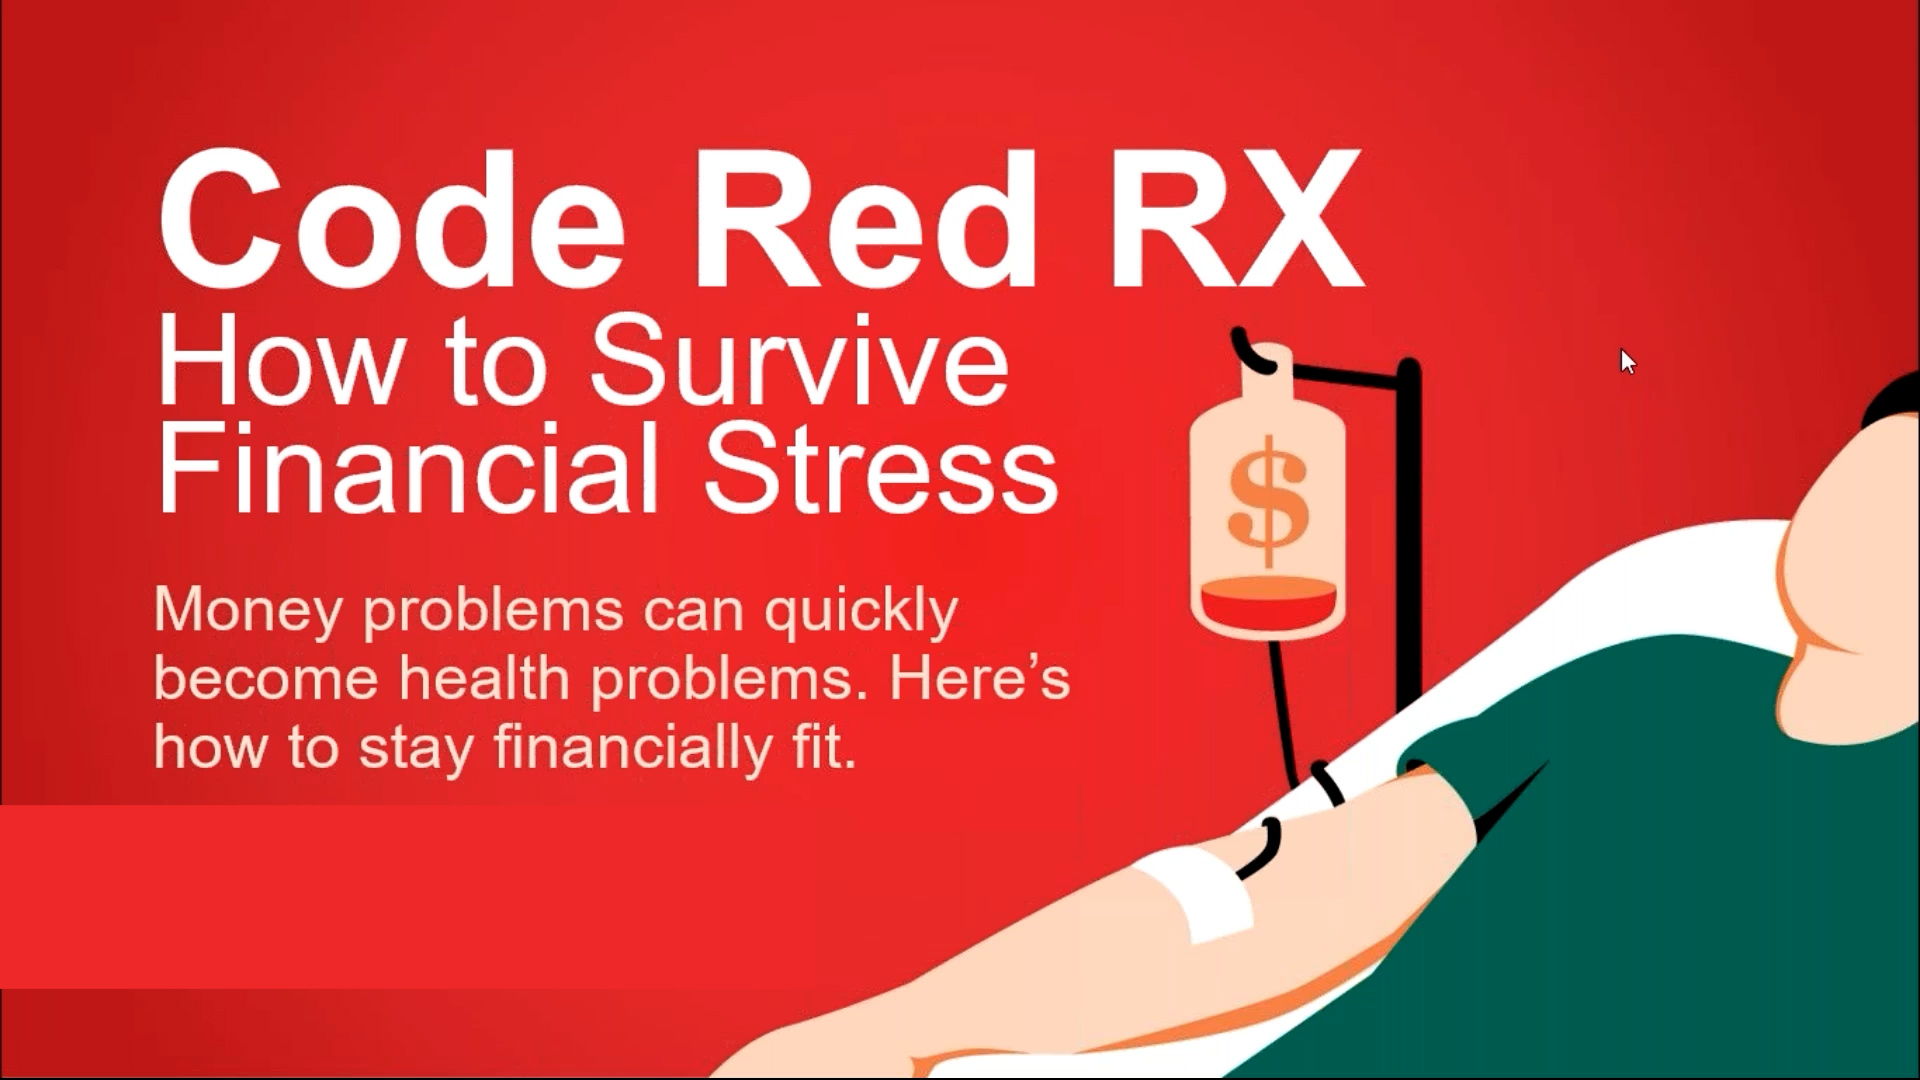 Code Red Rx: How to Survive Financial Stress